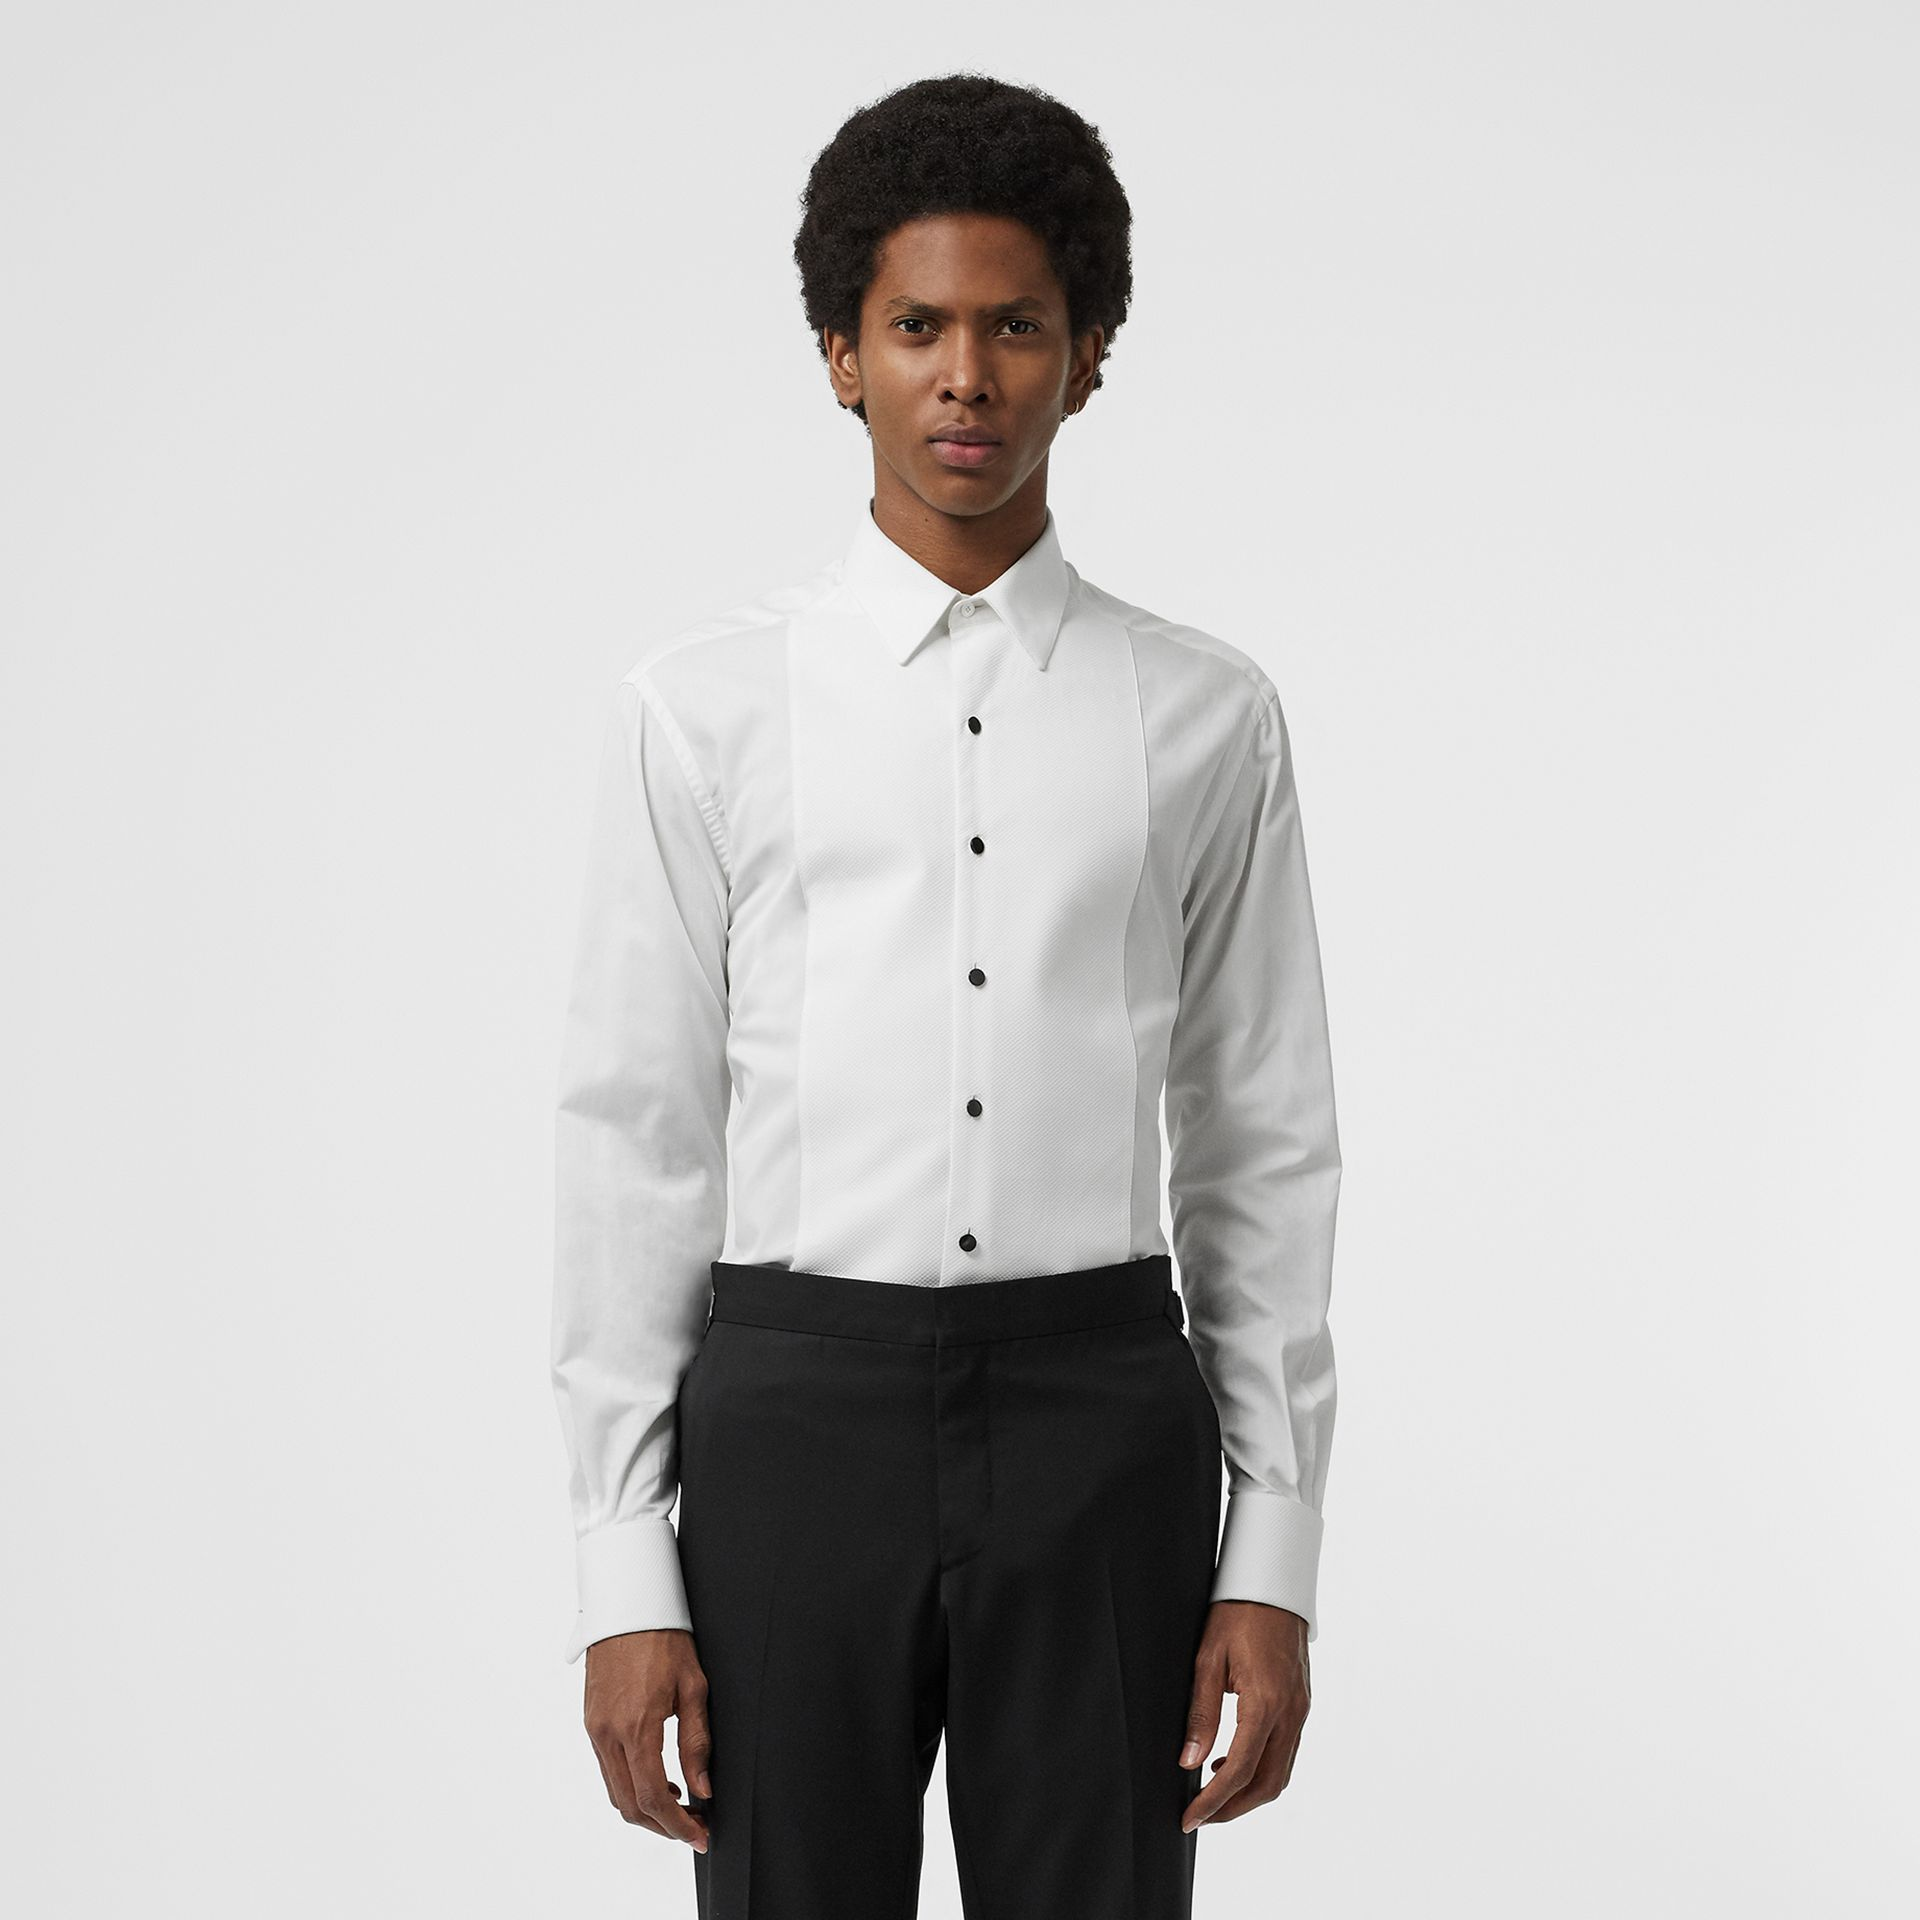 Modern Fit Panelled Bib Cotton Twill Evening Shirt in White - Men | Burberry - gallery image 0